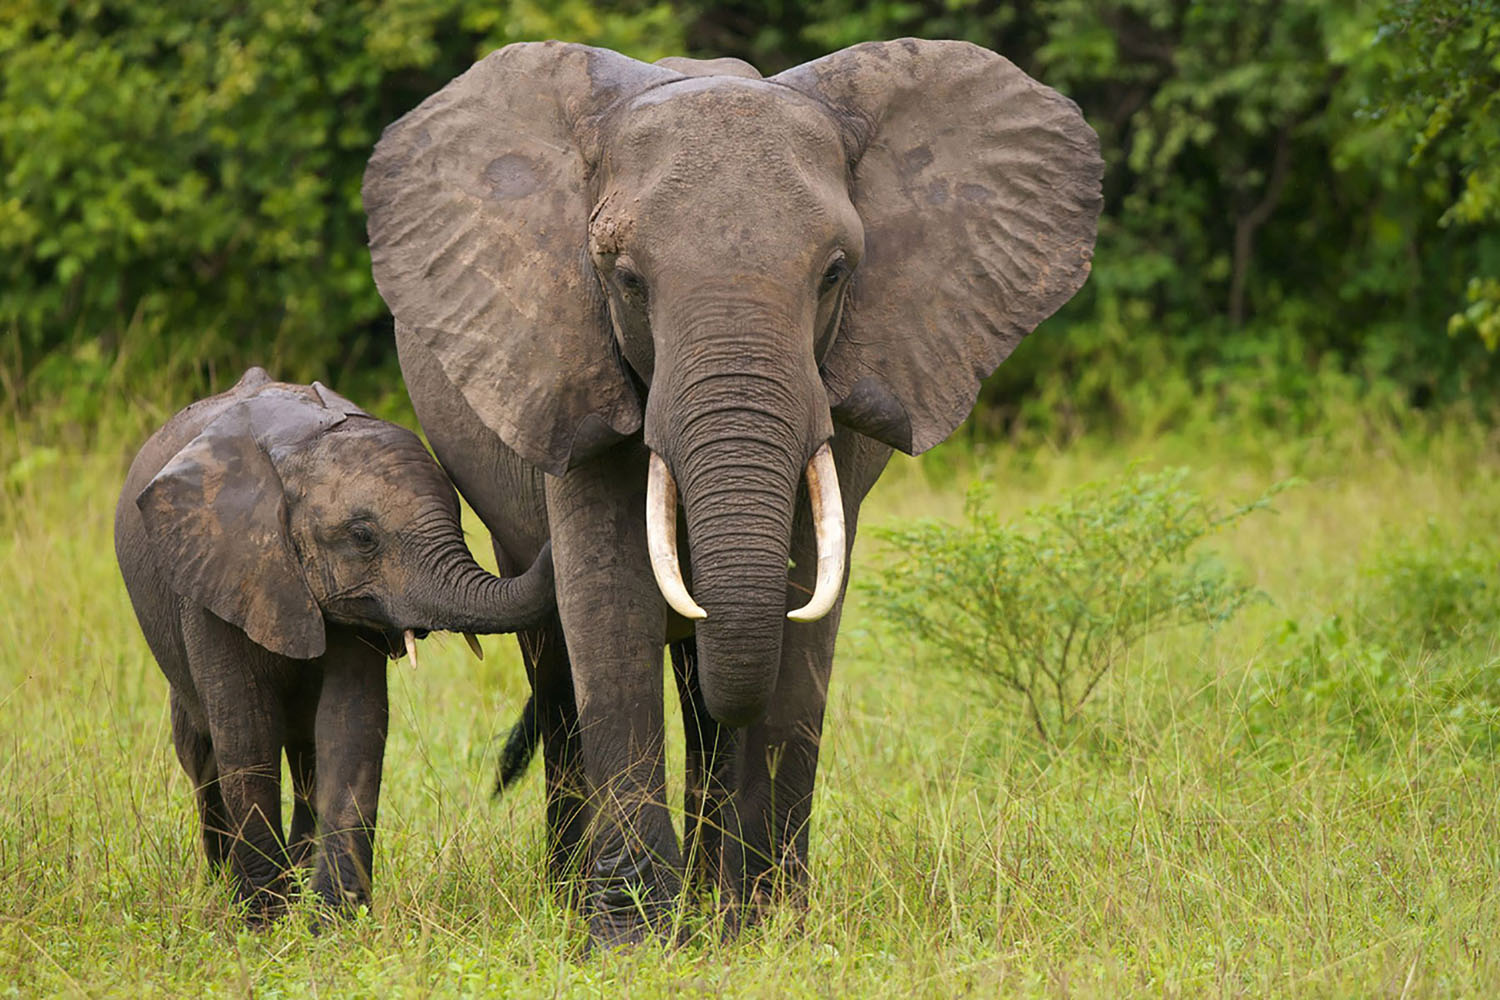 A mother elephant walking with her calf in the grass